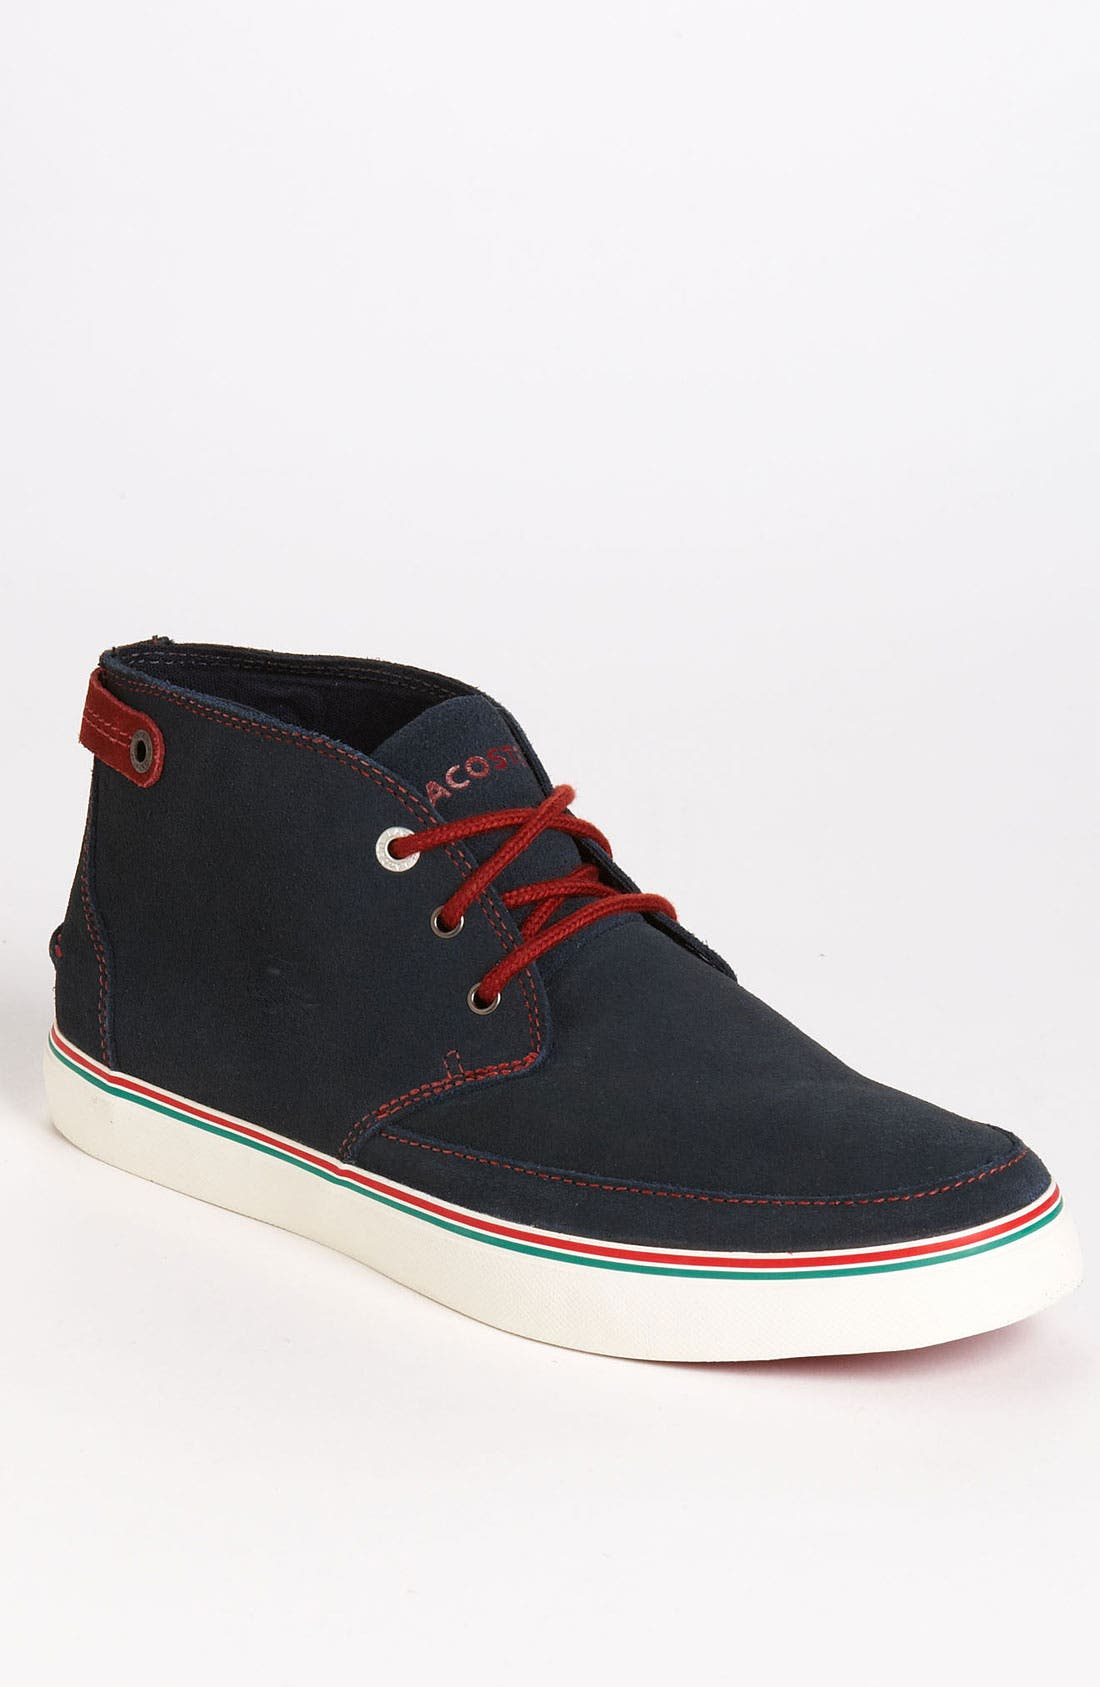 Alternate Image 1 Selected - Lacoste 'Clavel AP' Sneaker